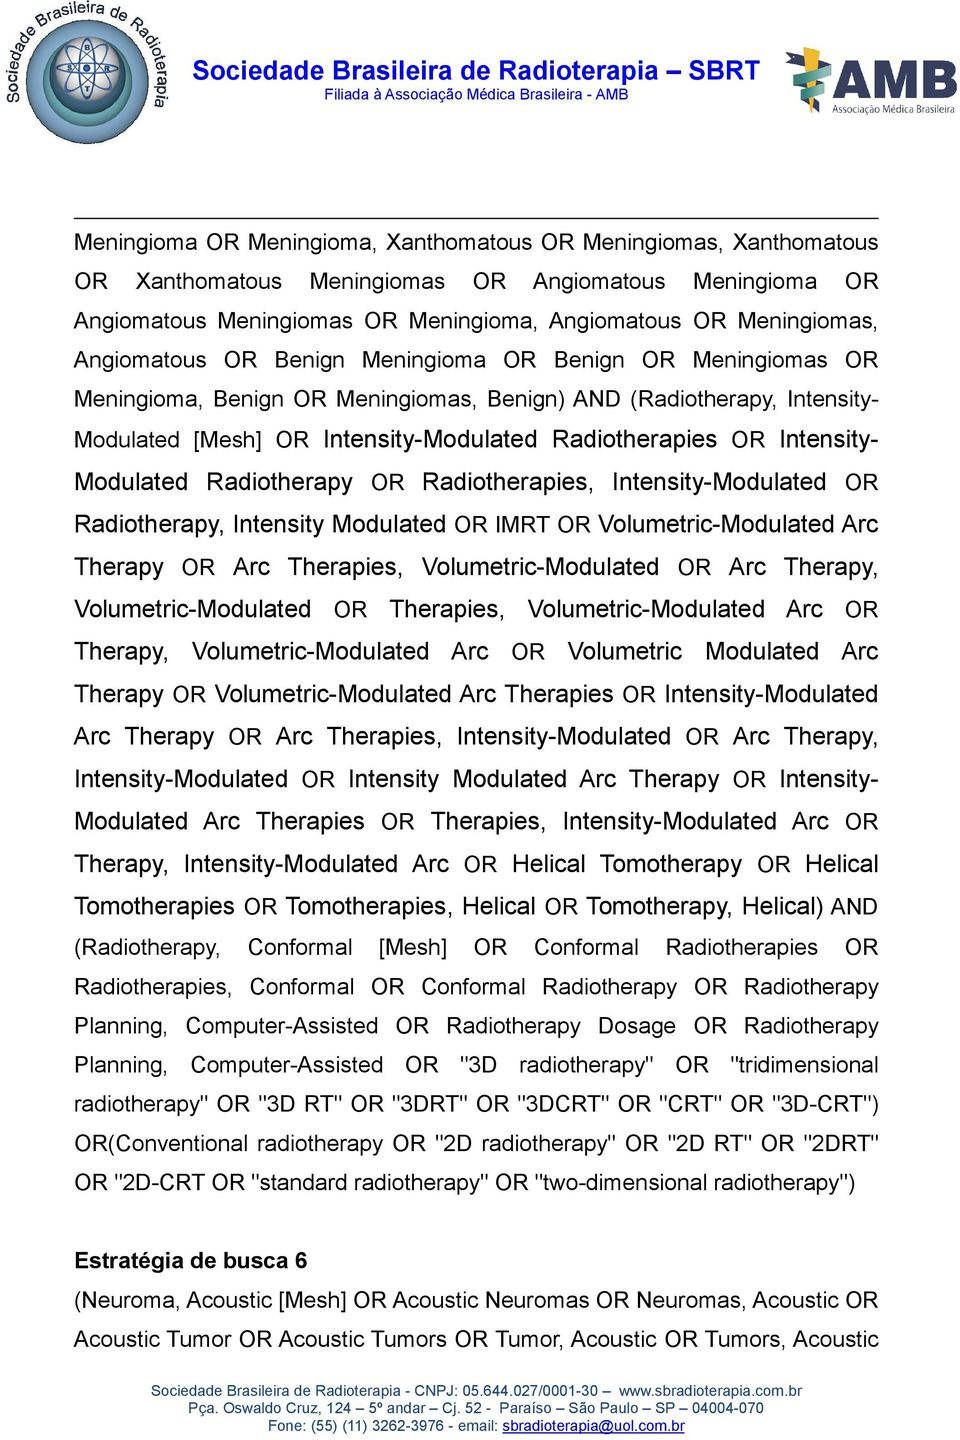 Intensity- Modulated Radiotherapy OR Radiotherapies, Intensity-Modulated OR Radiotherapy, Intensity Modulated OR IMRT OR Volumetric-Modulated Arc Therapy OR Arc Therapies, Volumetric-Modulated OR Arc